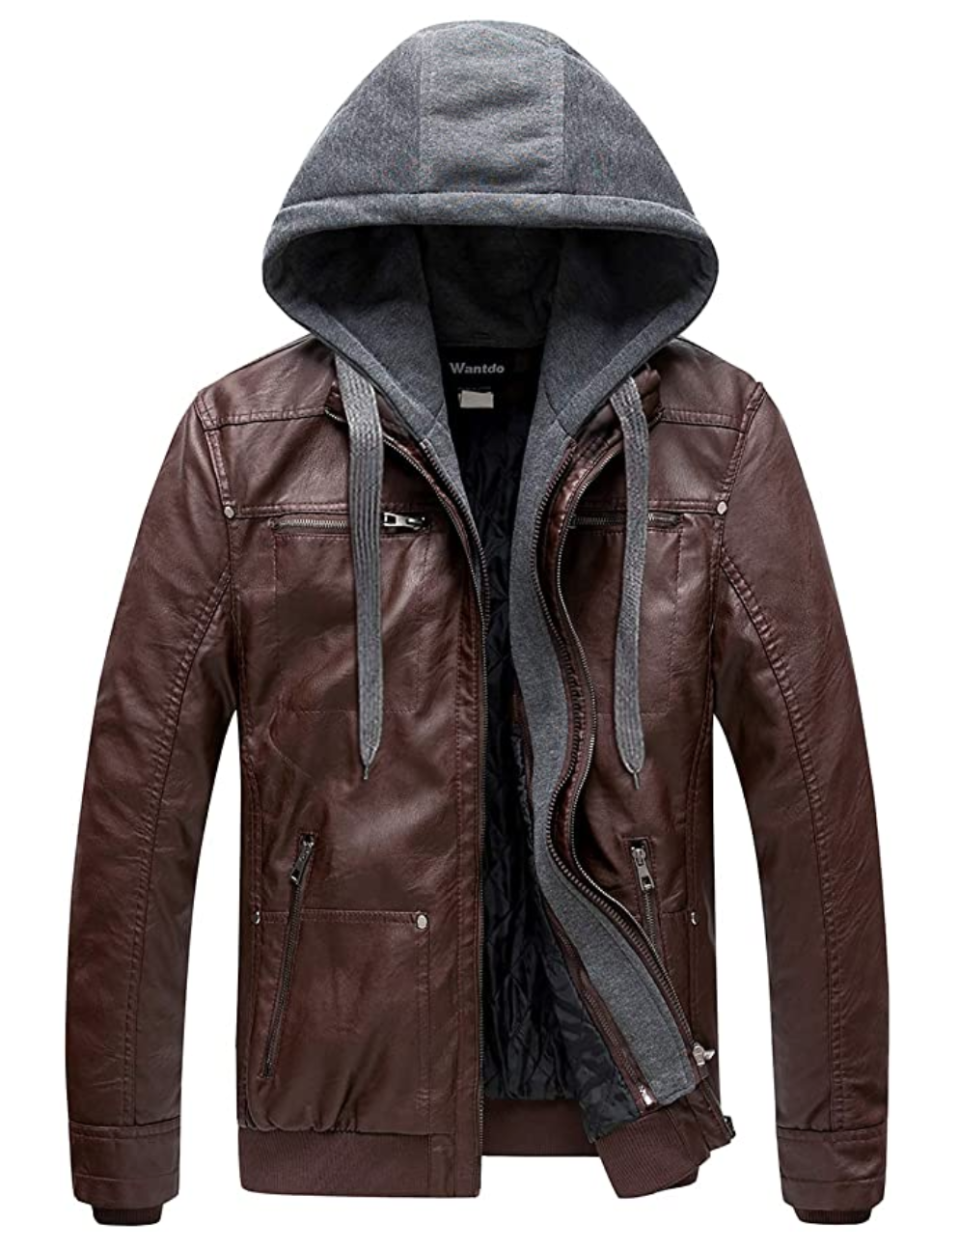 Wantdo Men's Leather Jacket with Removable Hood. Image via Amazon.